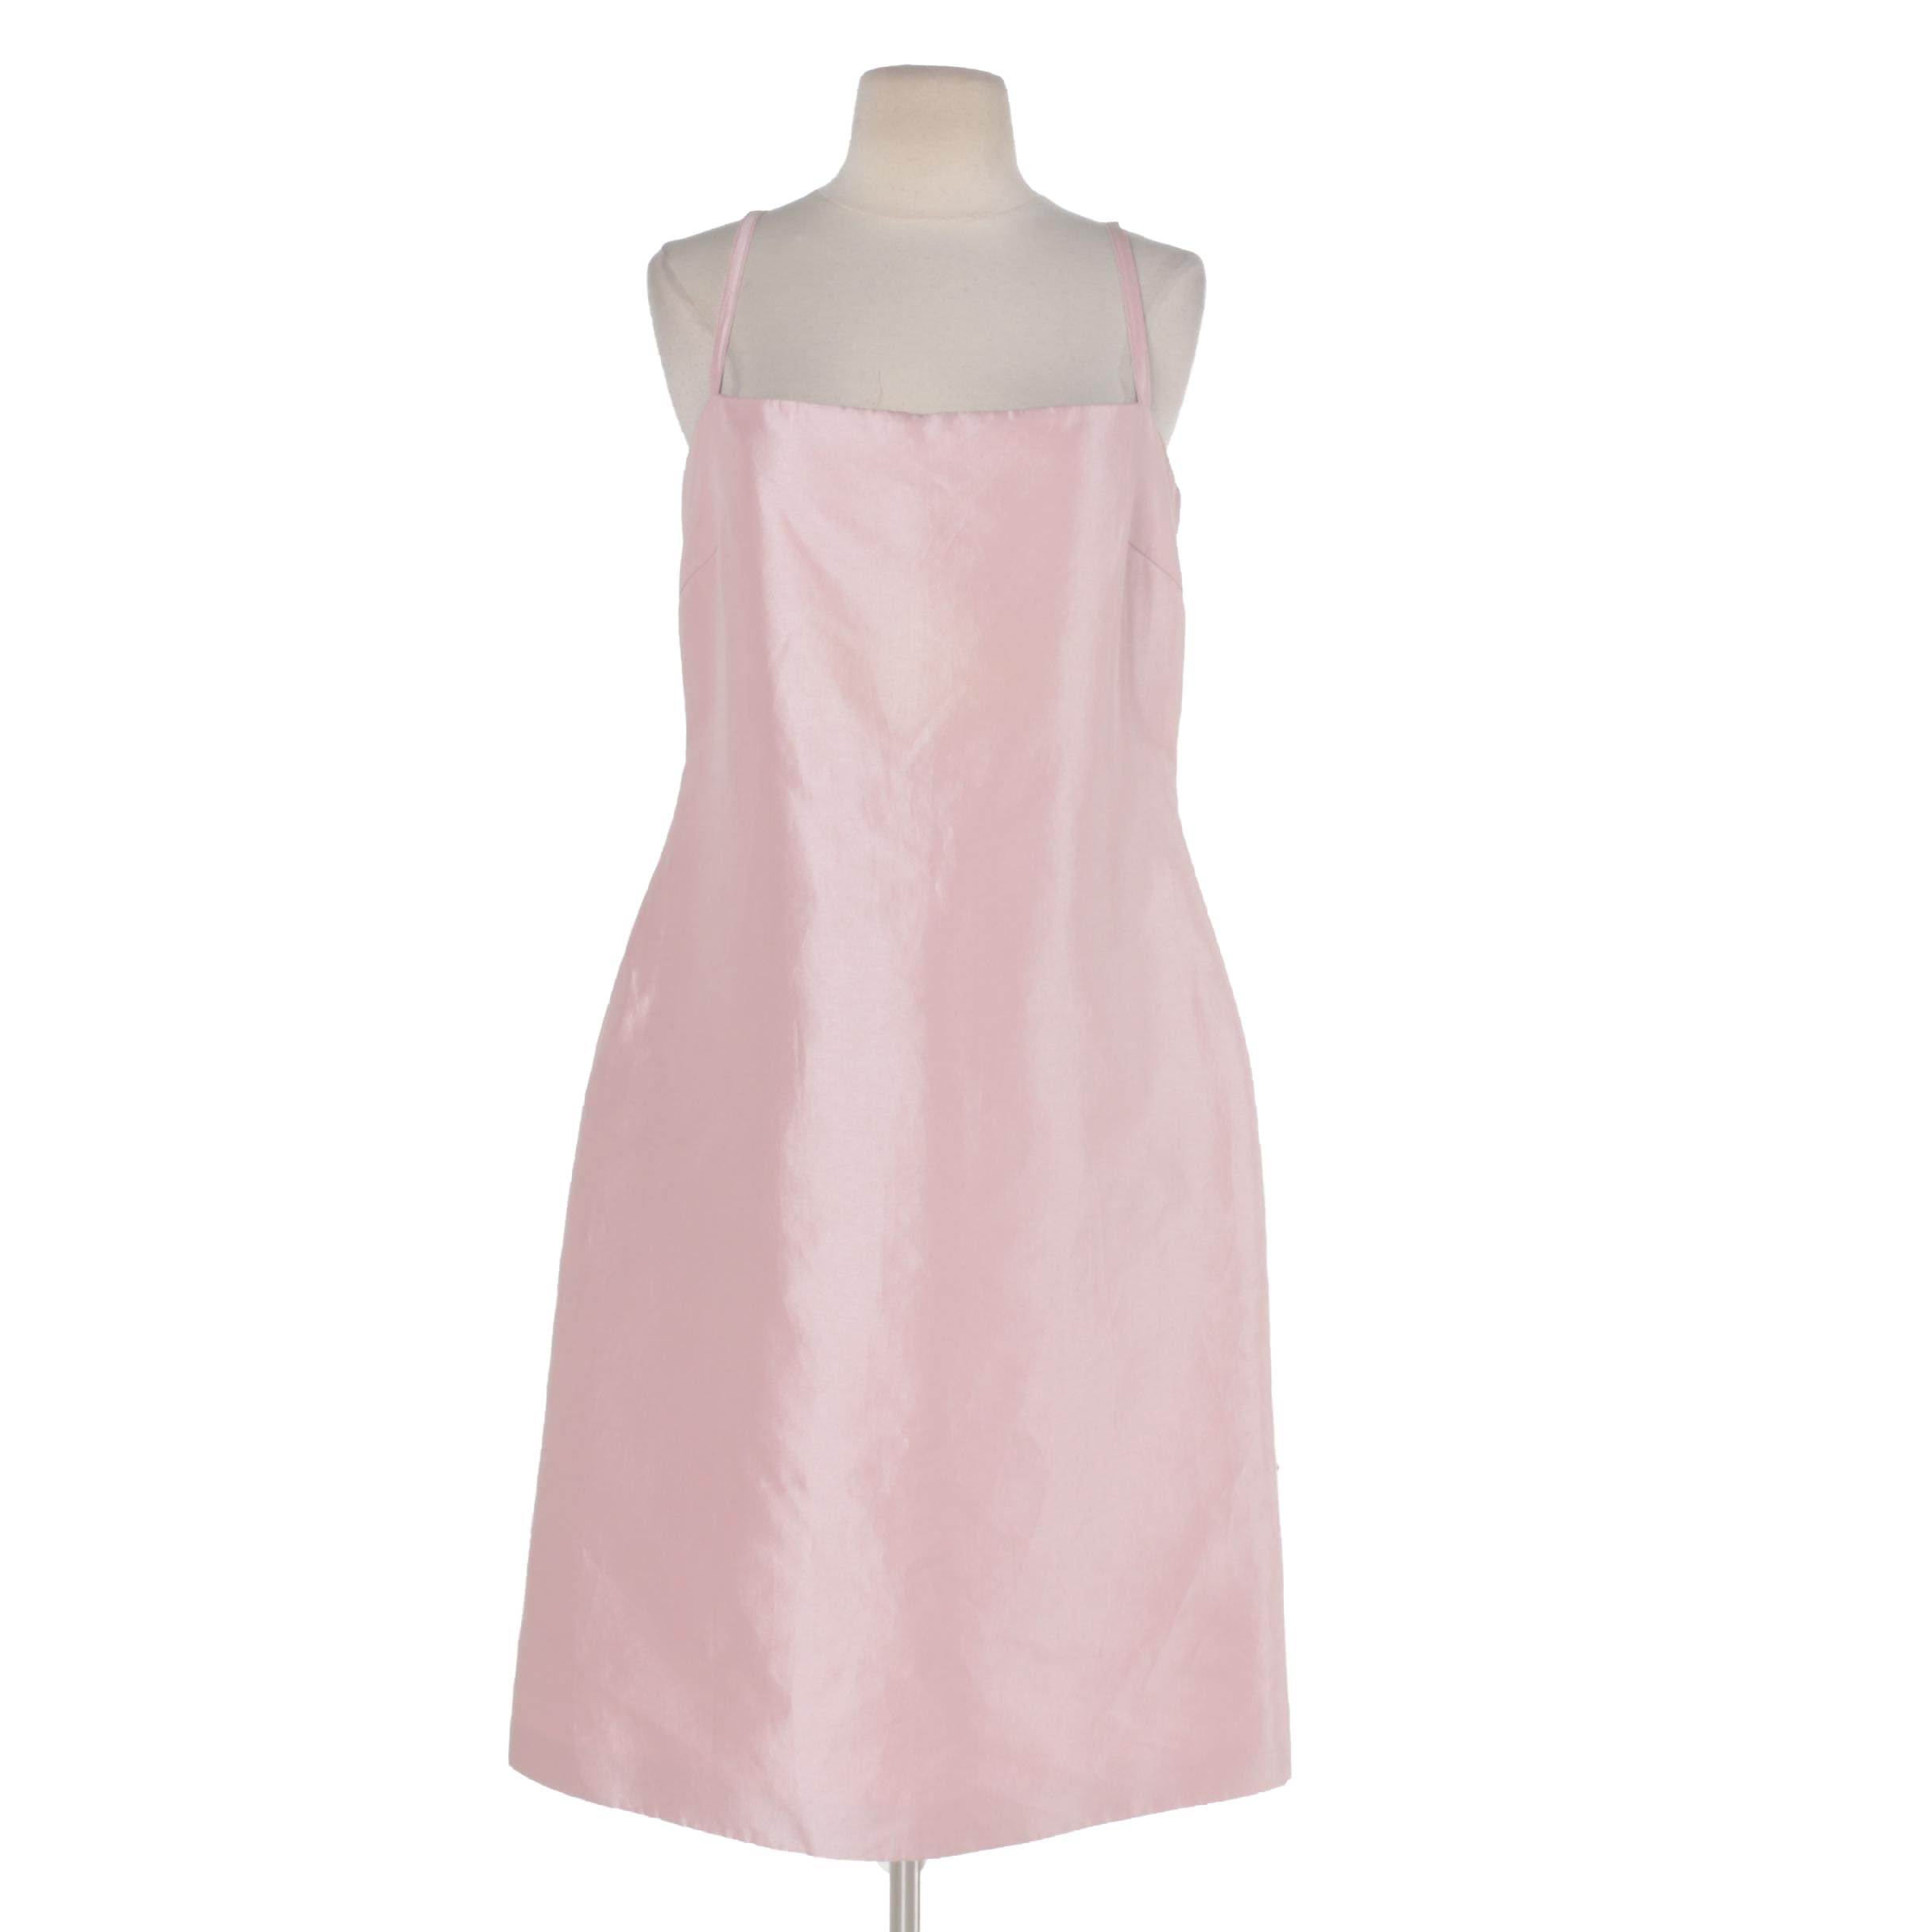 Pianforte di Max Mara Pink Dress